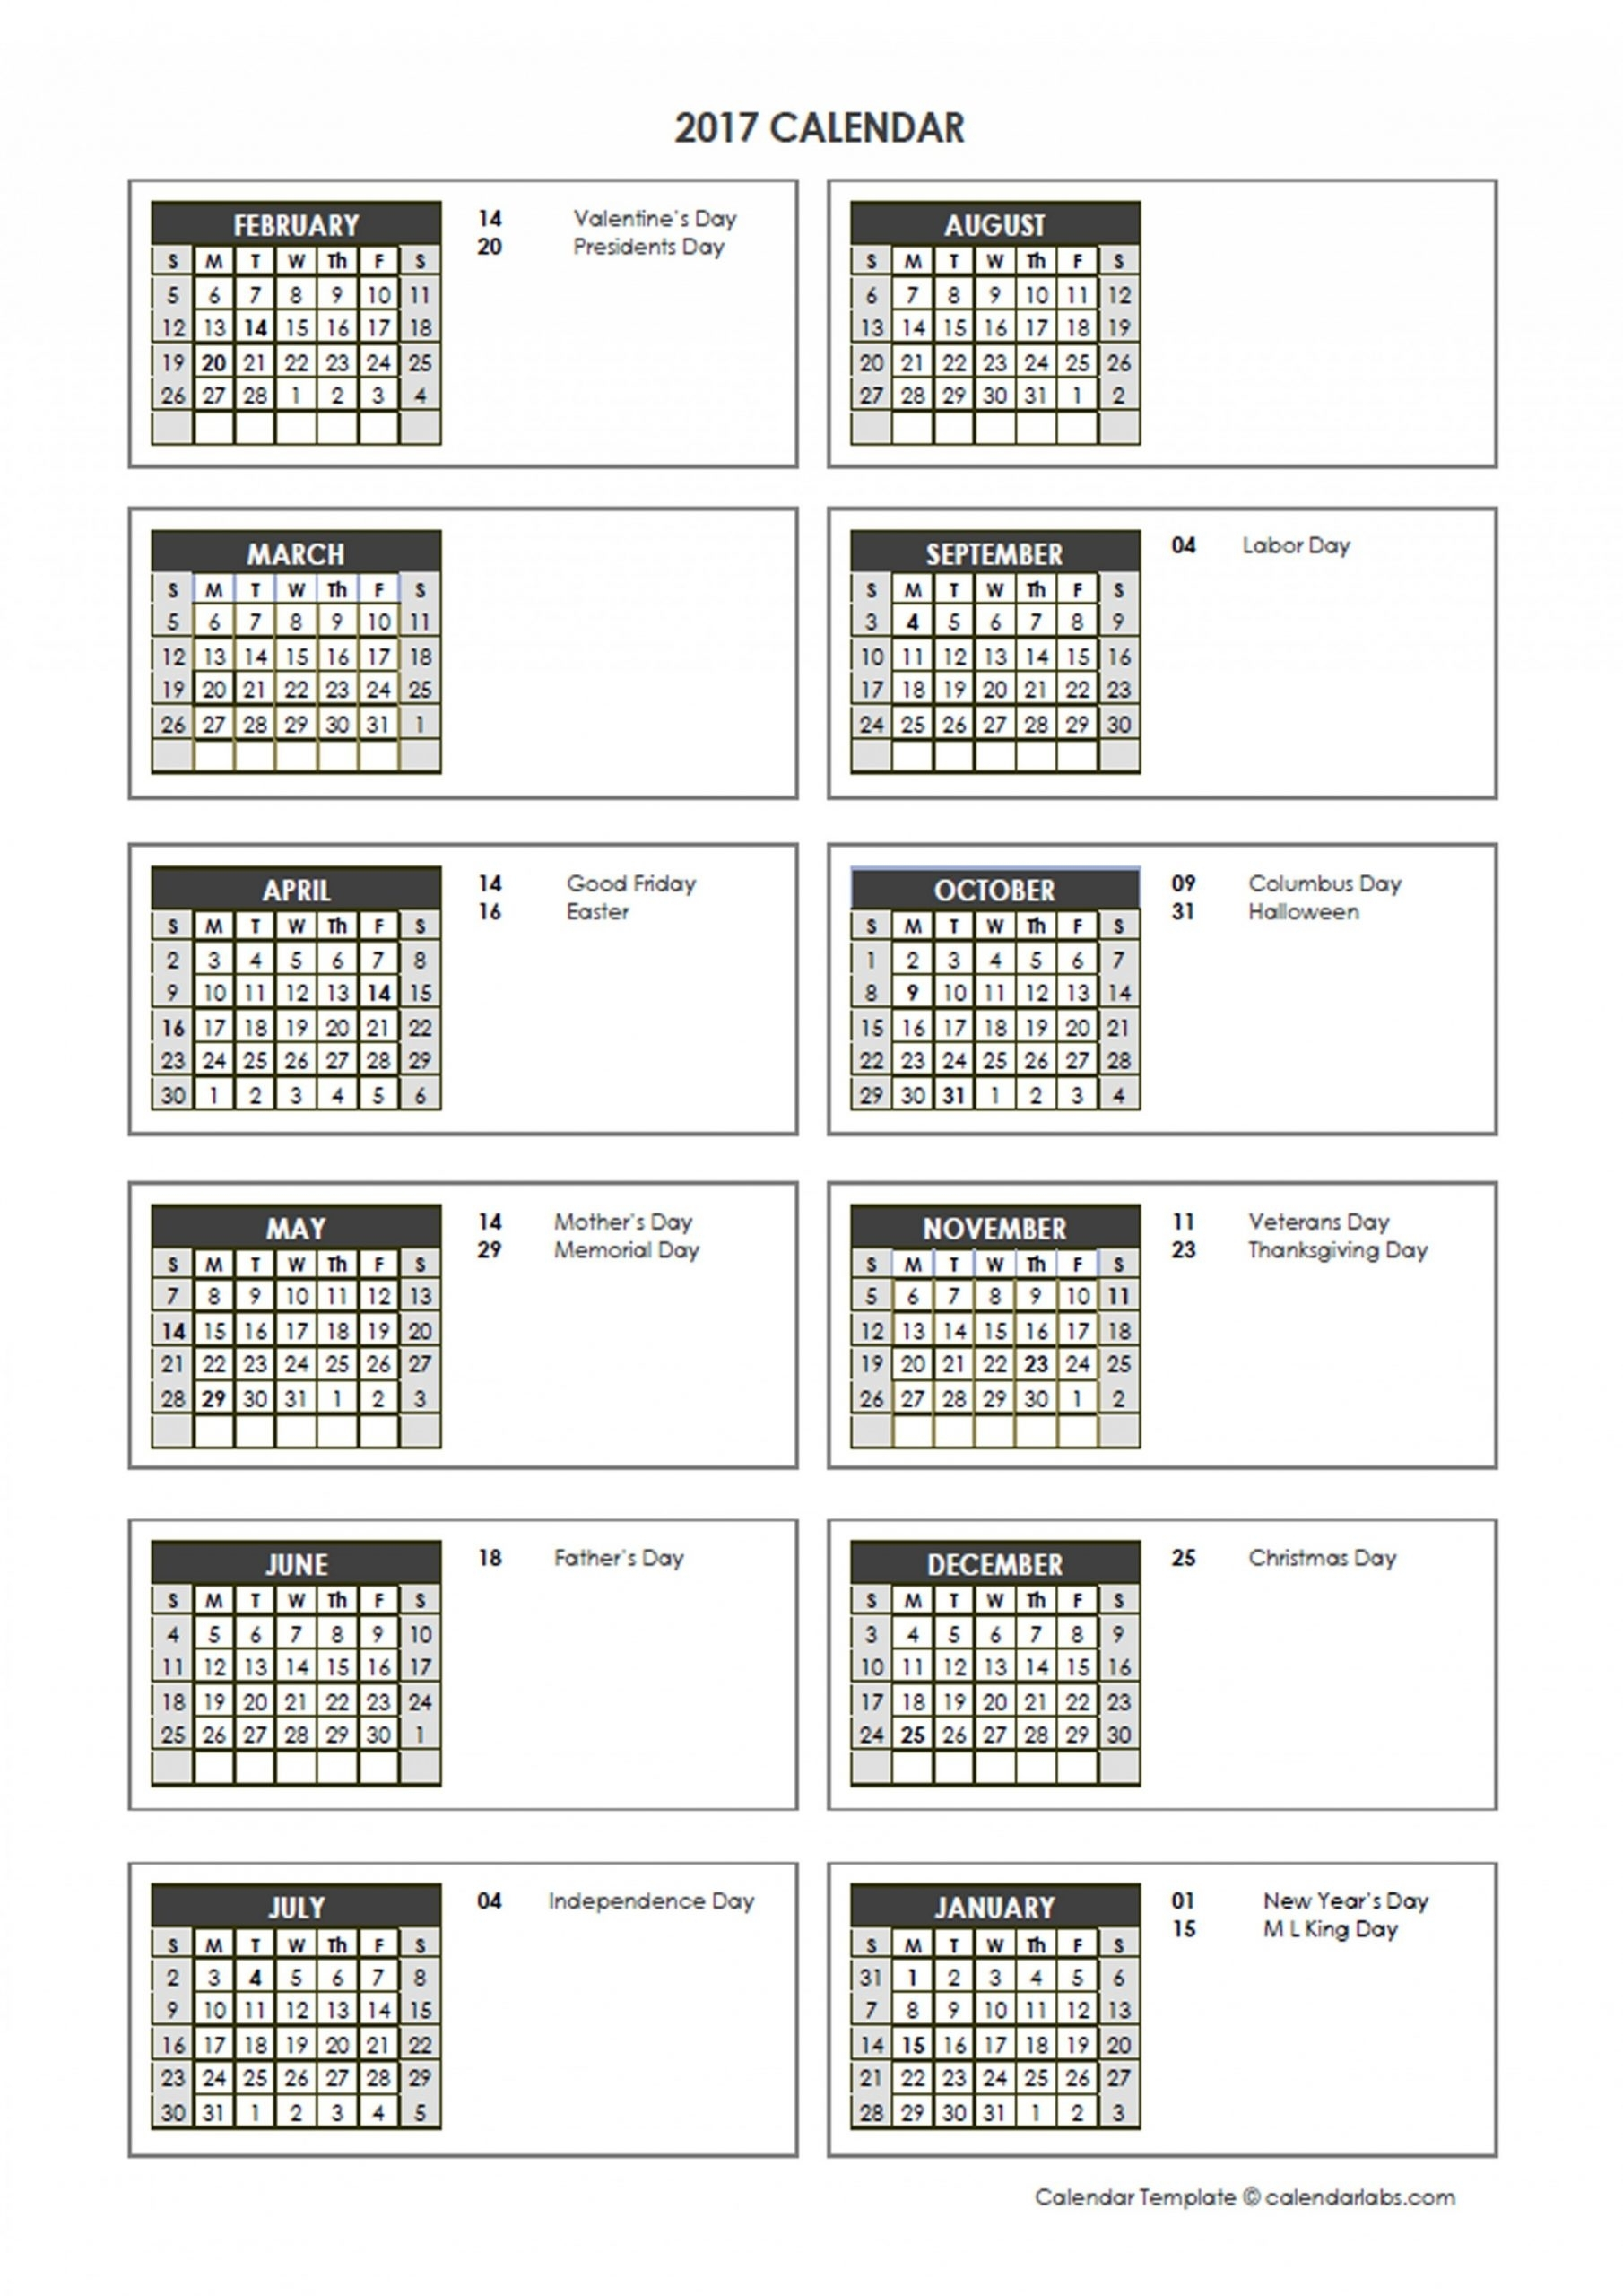 Calendar Template Google Docs Seven Common Misconceptions About Calendar Template Google Docs